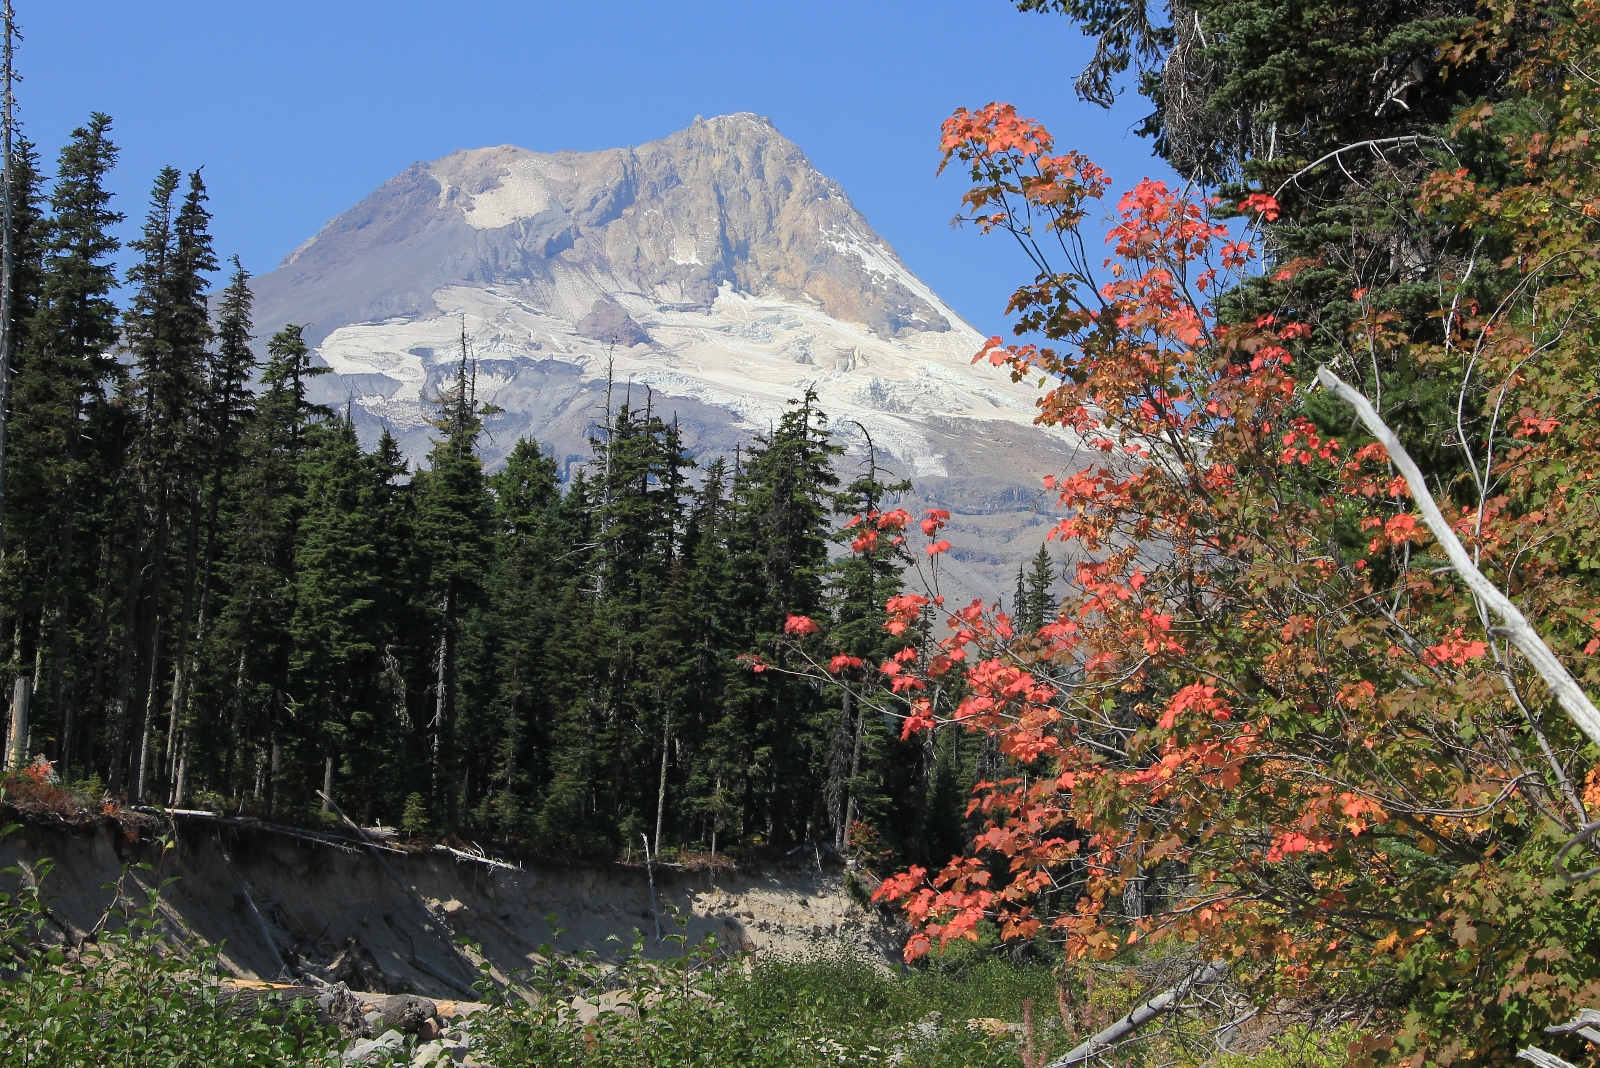 09-12-15 Mt. Hood Elk Meadows Gnarl Ridge (38)